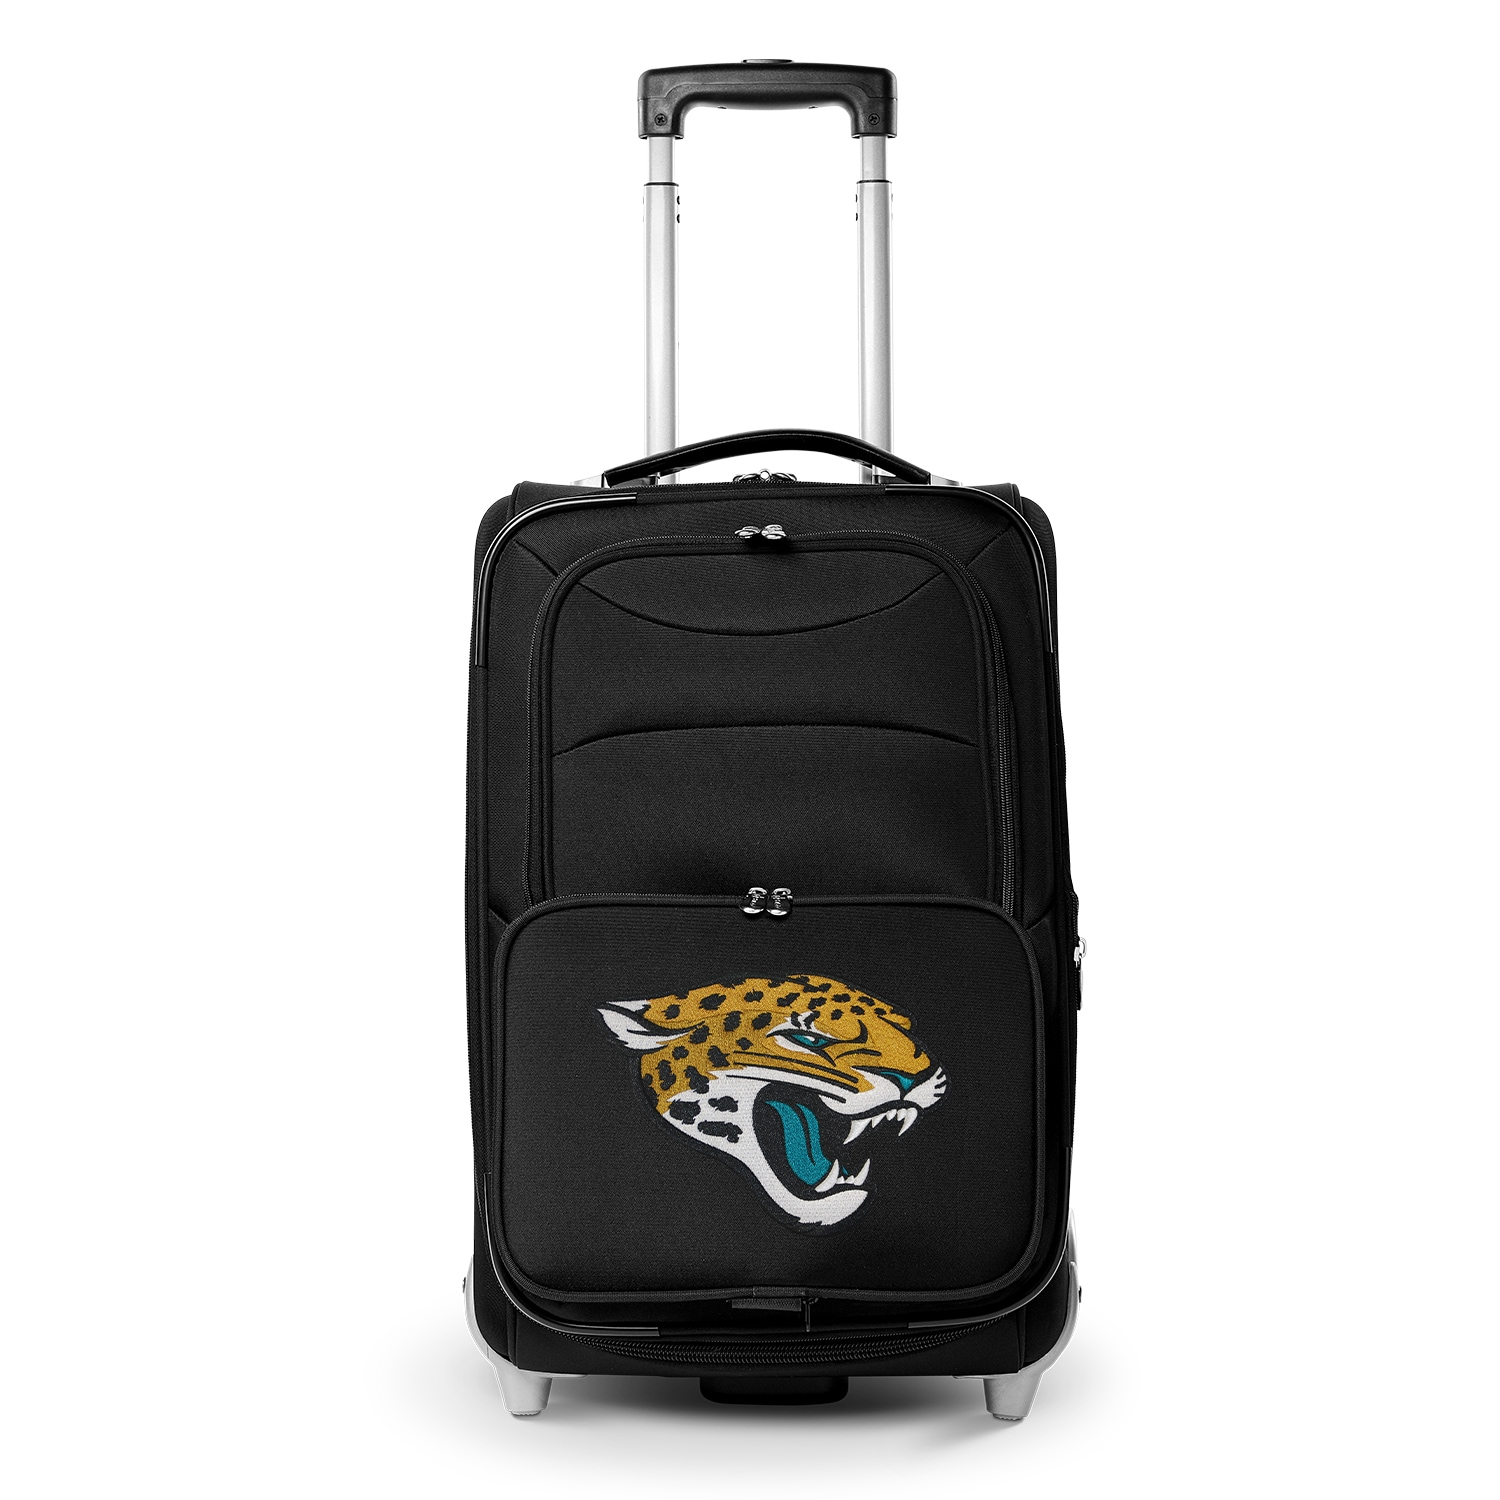 "Jacksonville Jaguars 21"" Rolling Carry-On Suitcase"